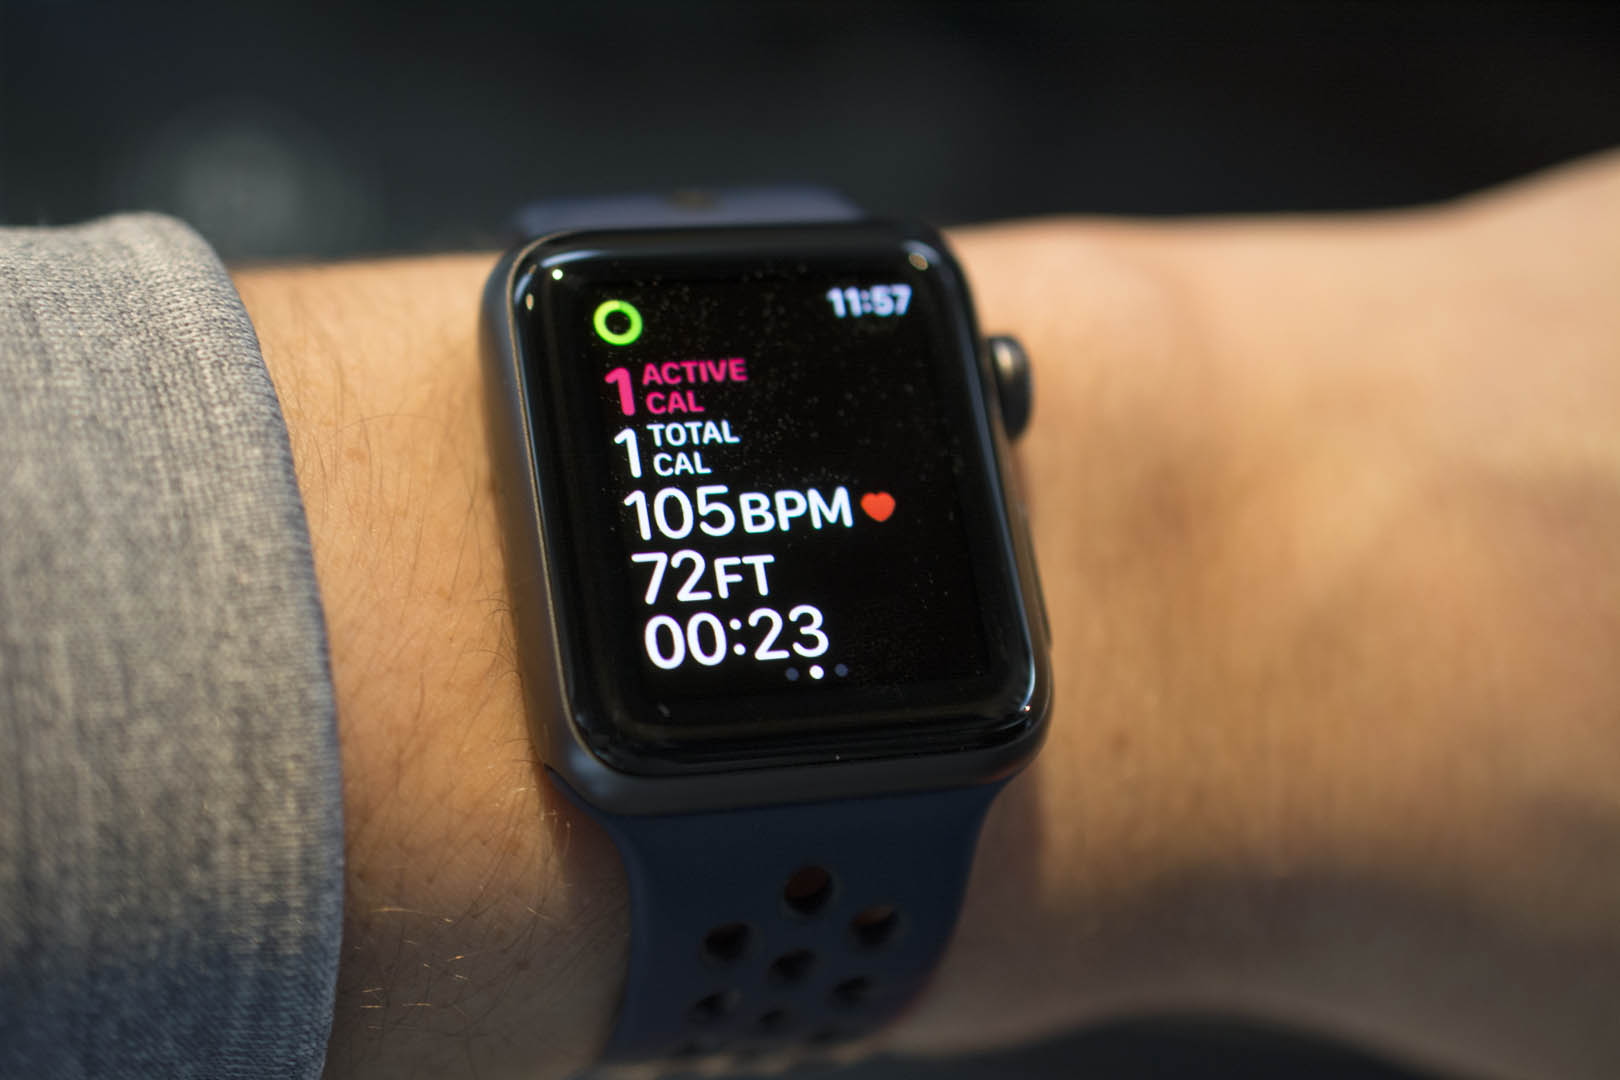 The Apple Watch Series 3 is discounted this week.